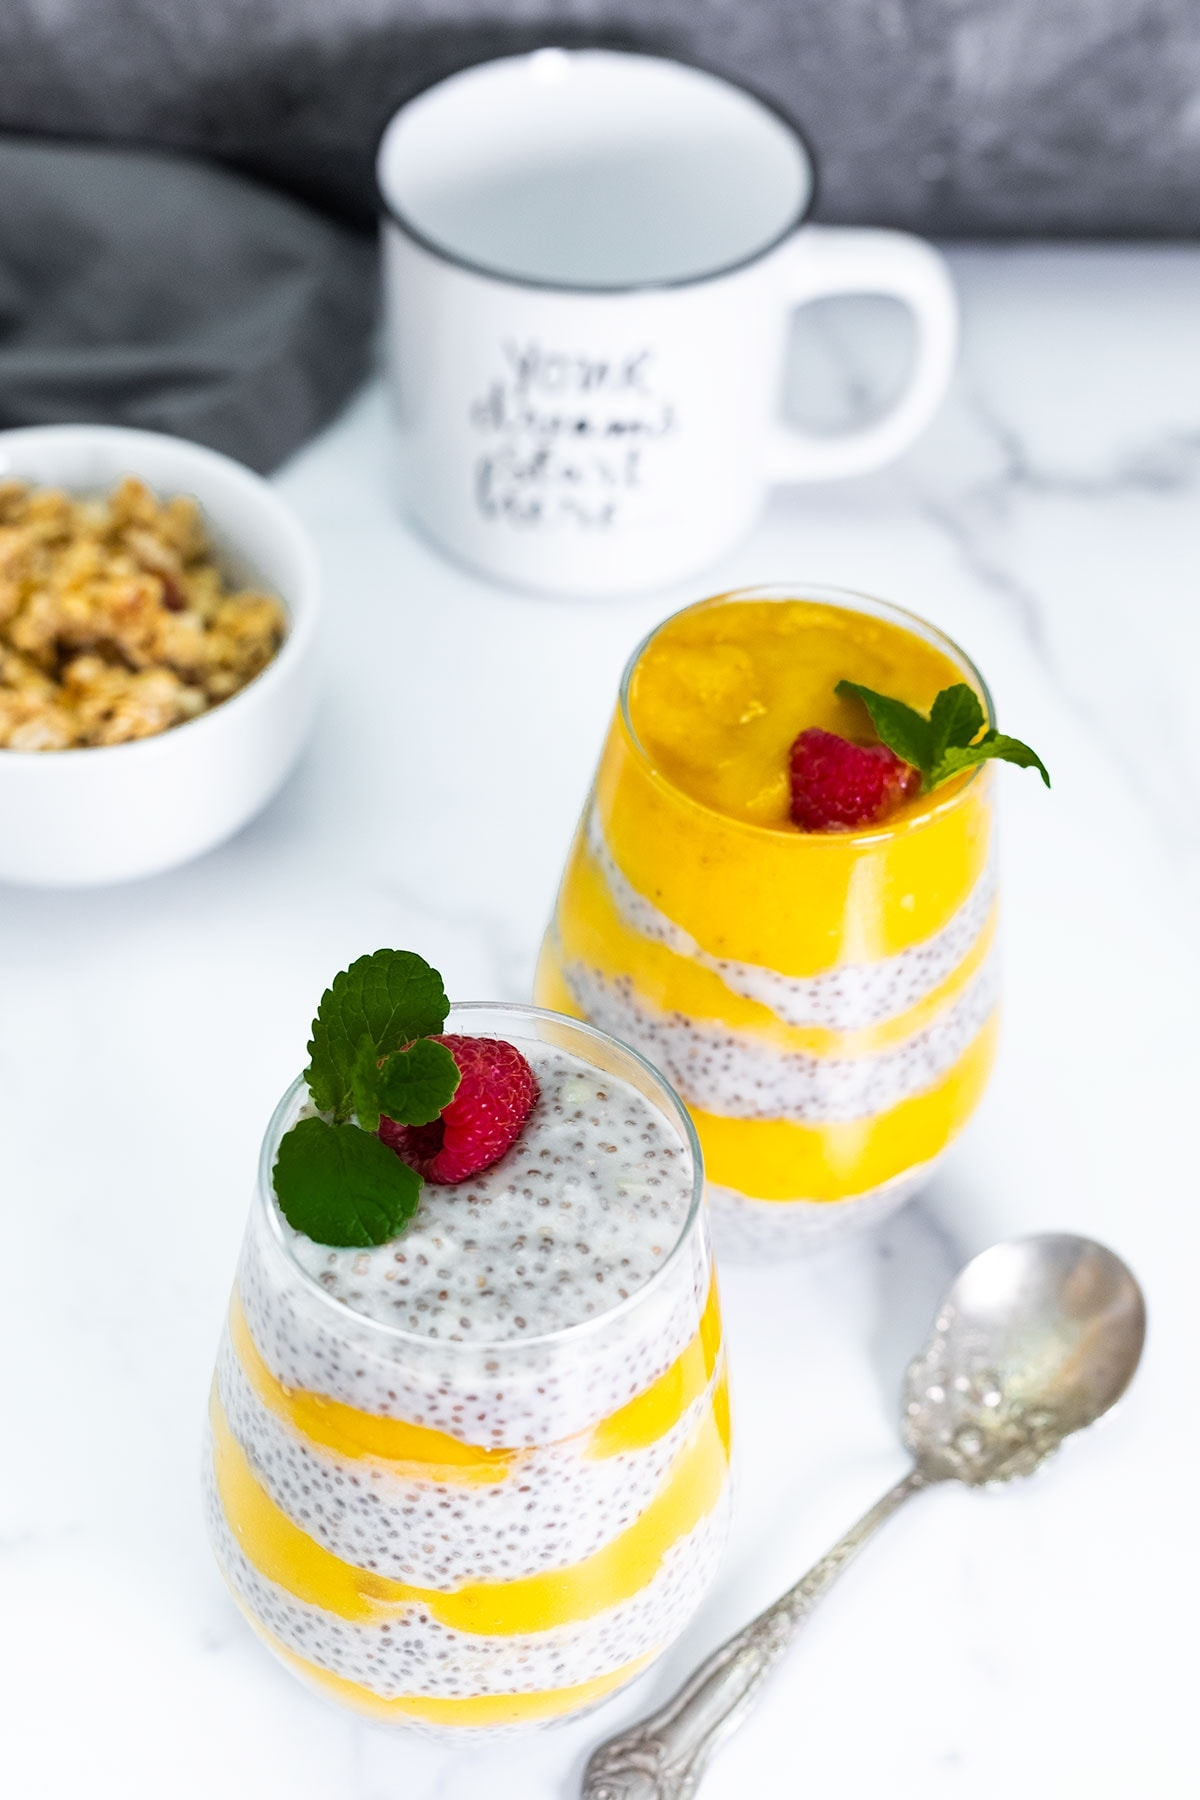 overlay, mango chia pudding into 2 glass jars on a white background